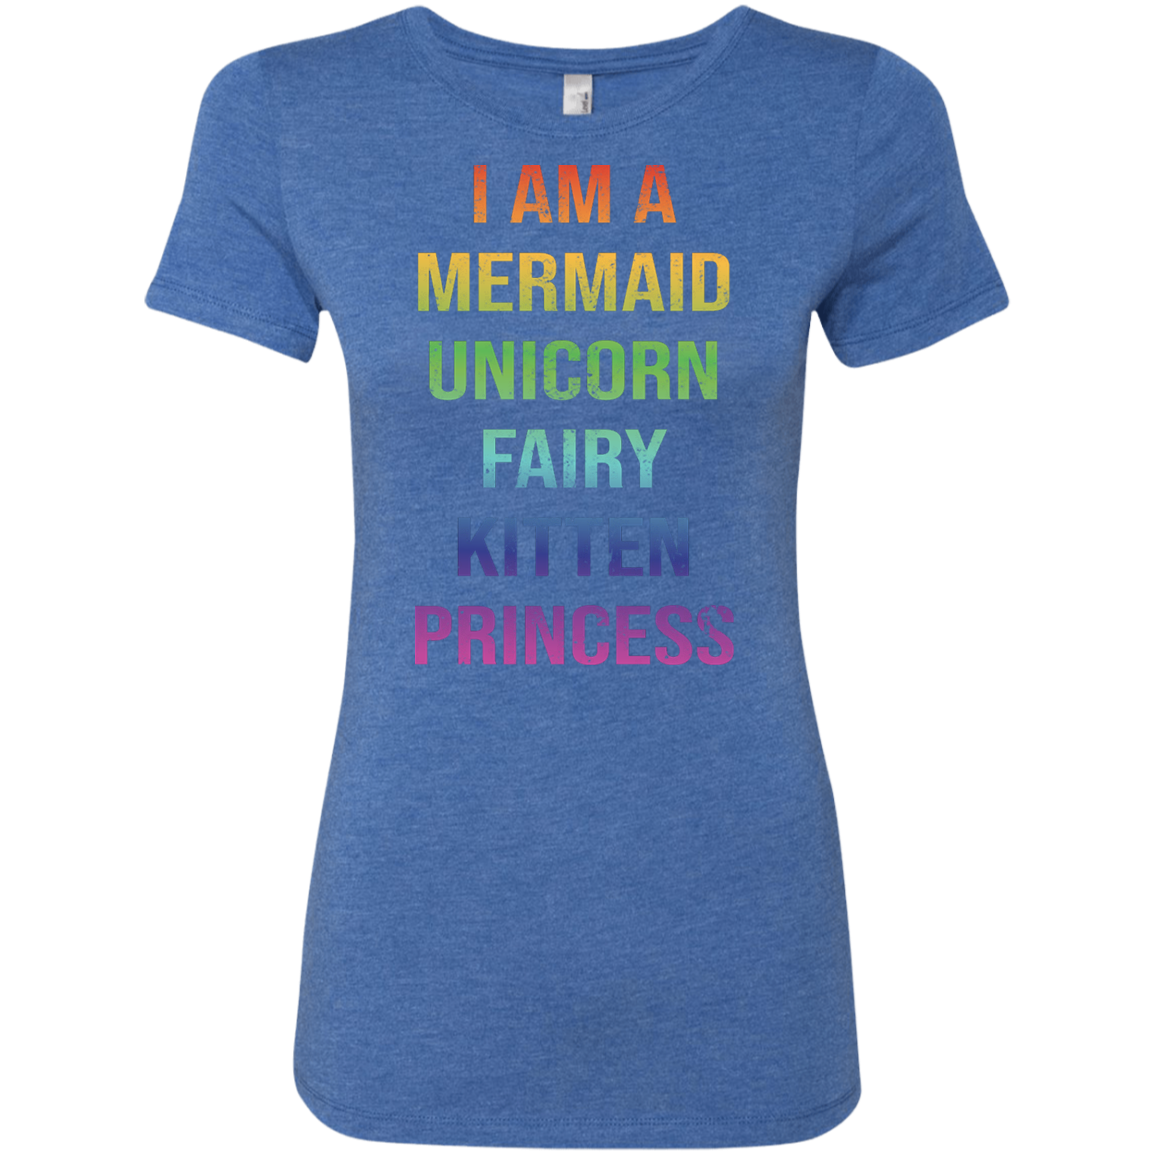 I Am A Mermaid Unicorn Fairy Kitten Princess Women's Classic Tee